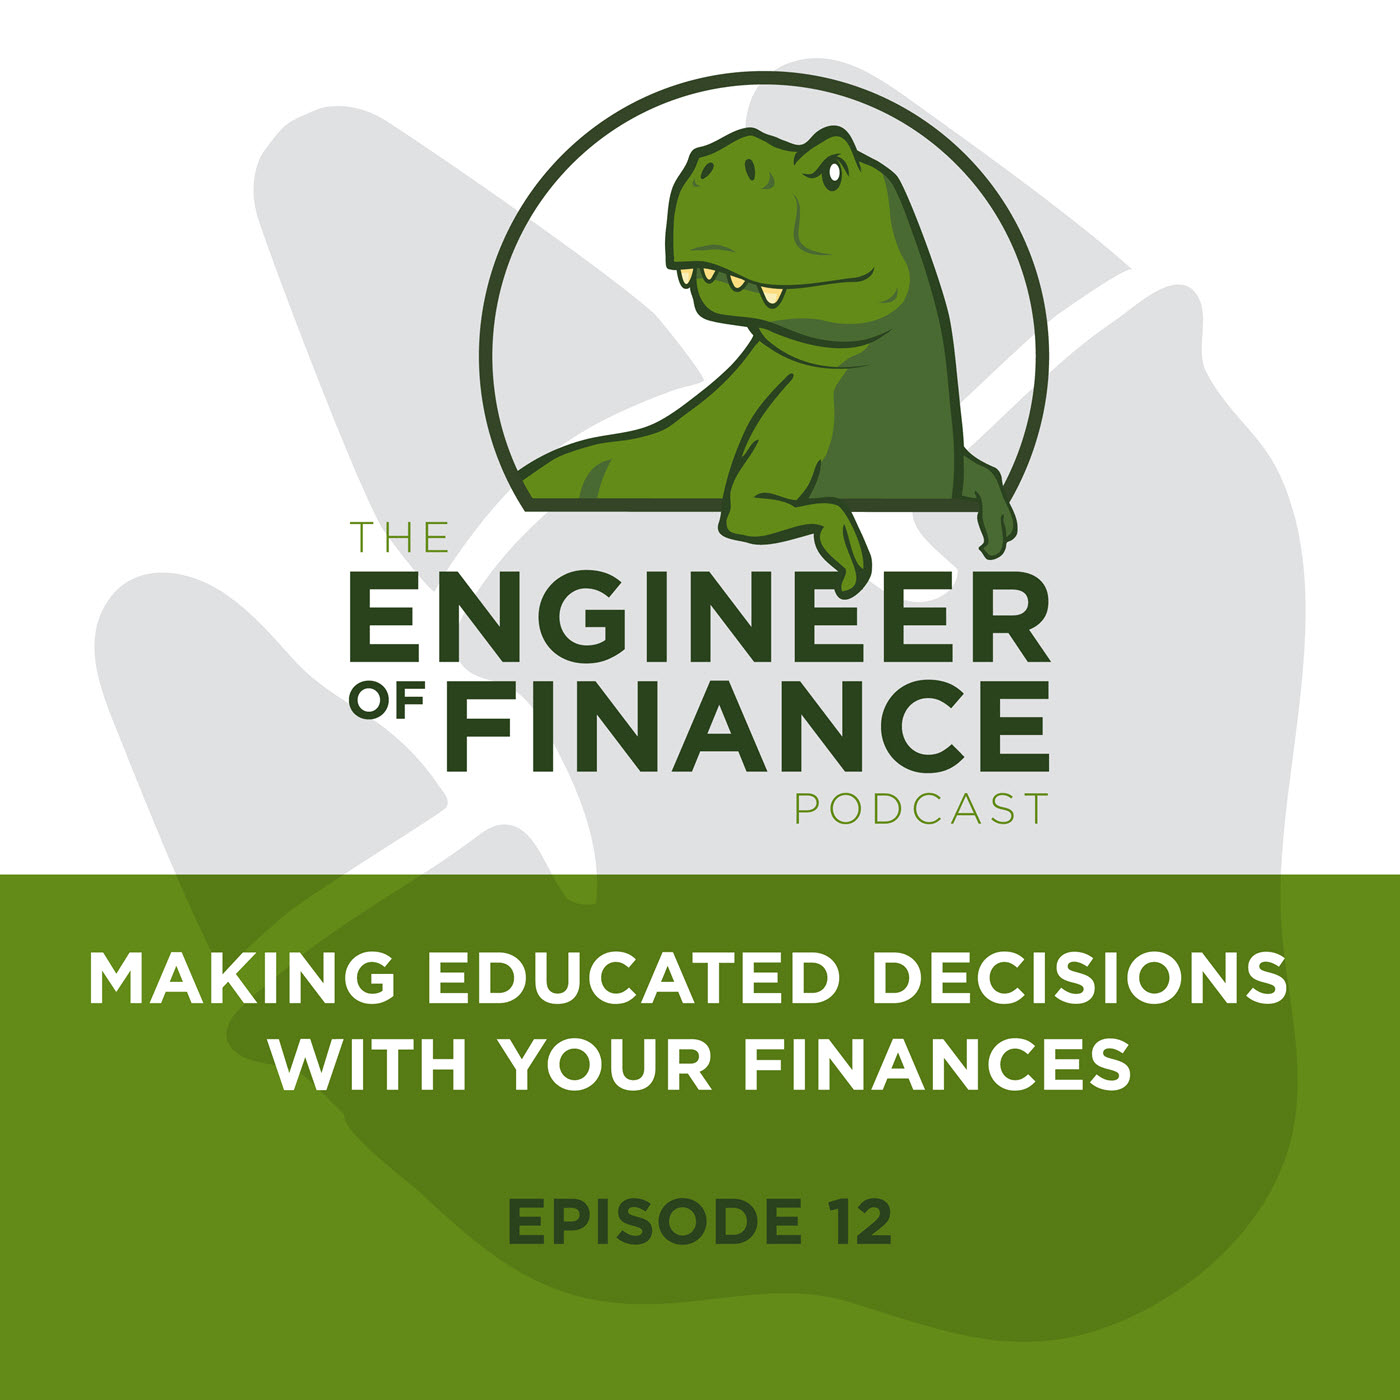 Making Educated Decisions With Your Finances – Episode 12